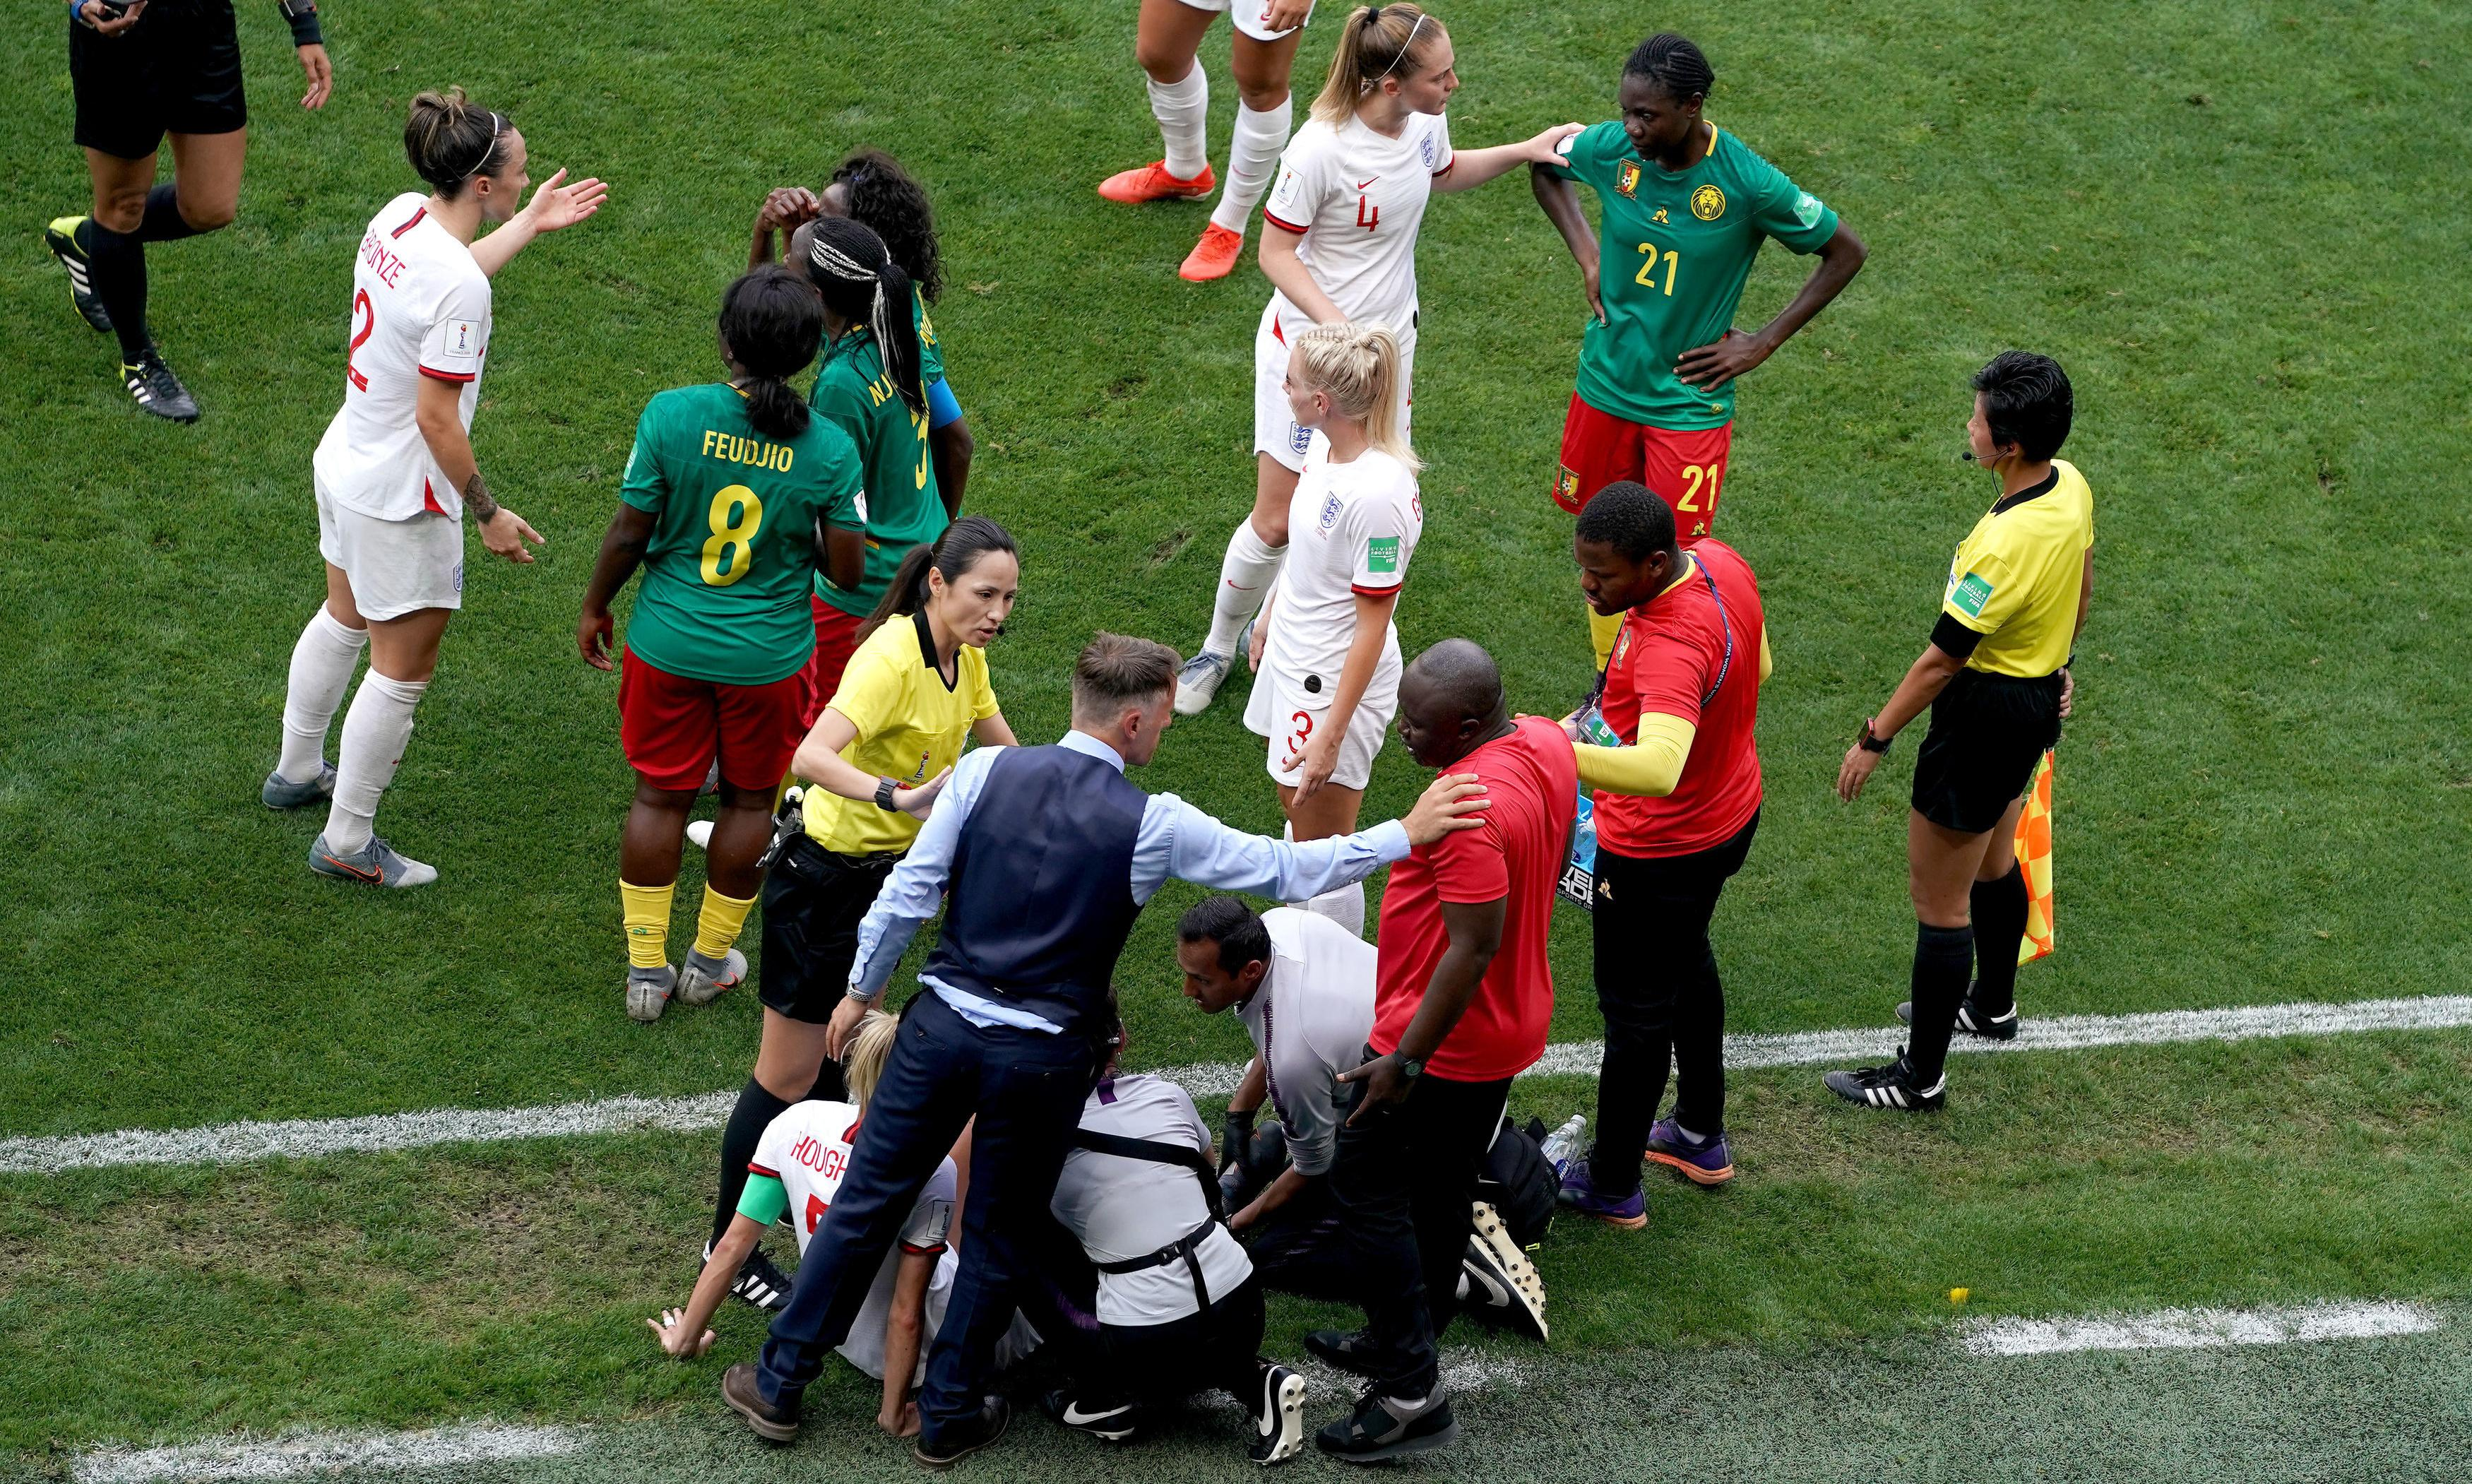 Women's football cannot – and should not – be judged on one wild game